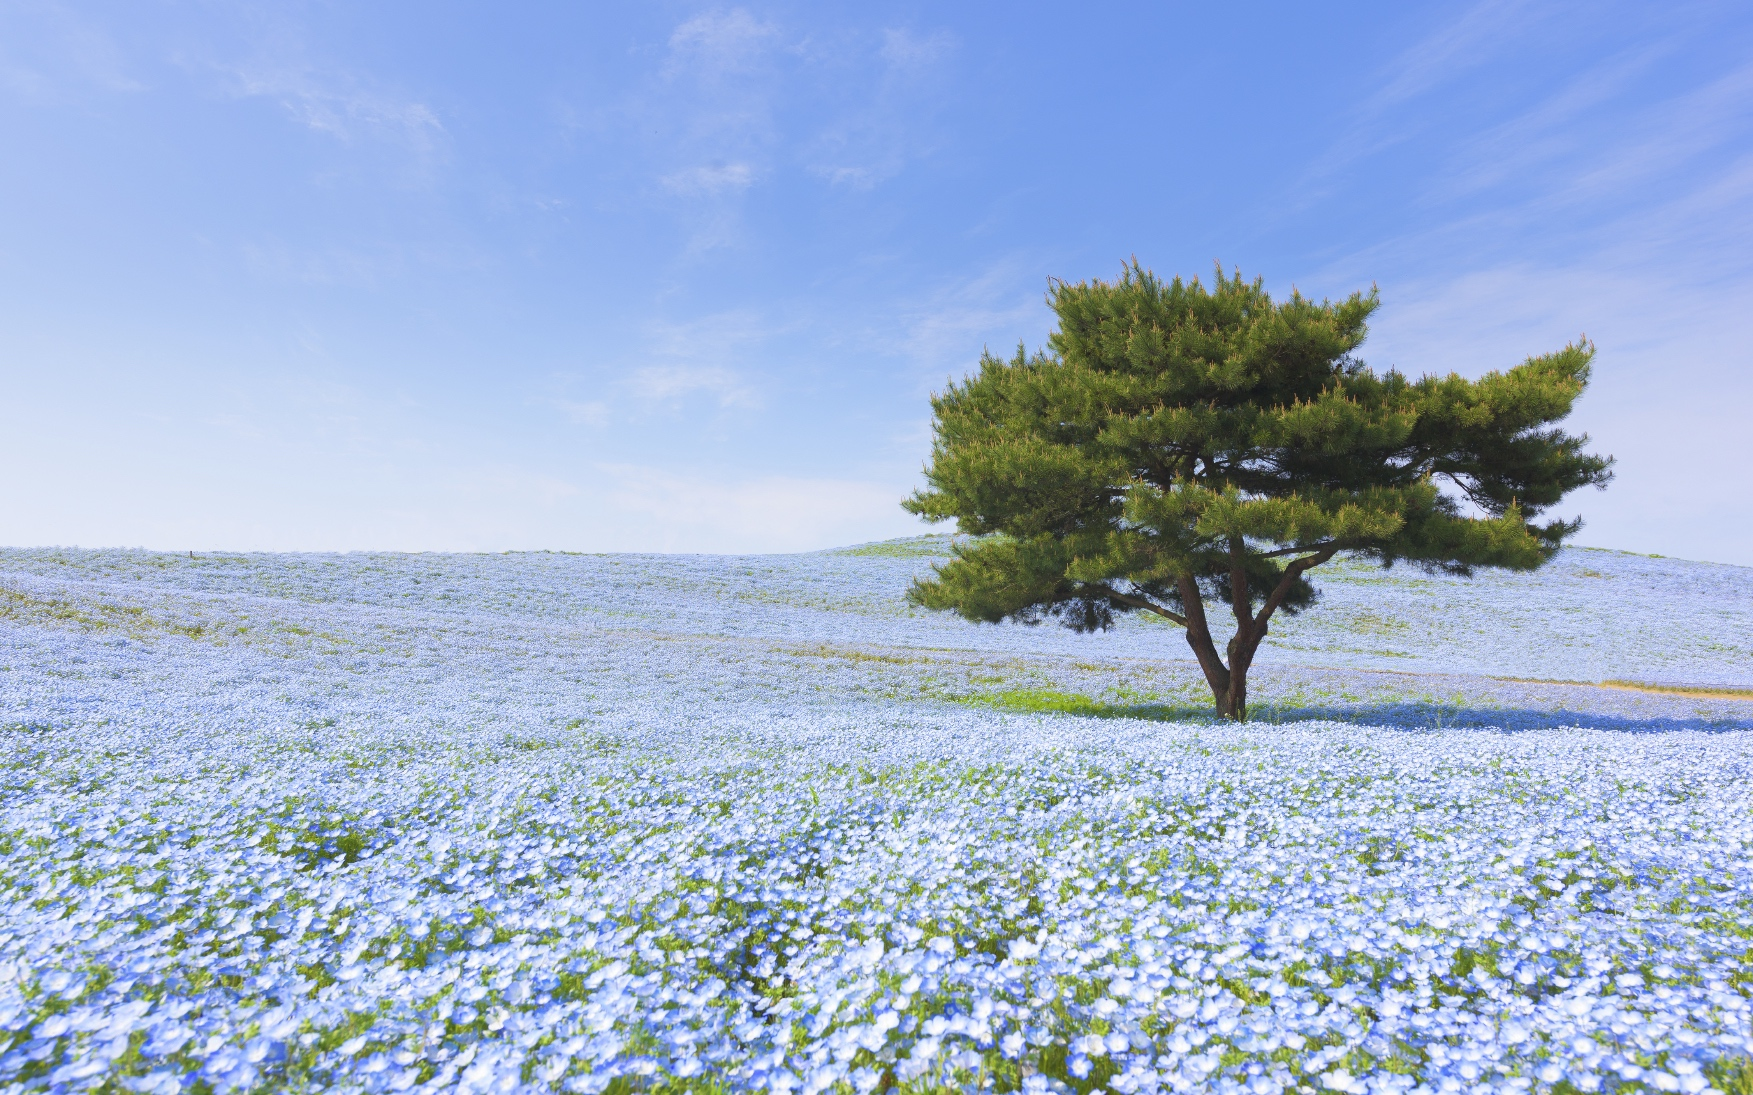 Mountain, Tree and Nemophila in Japan